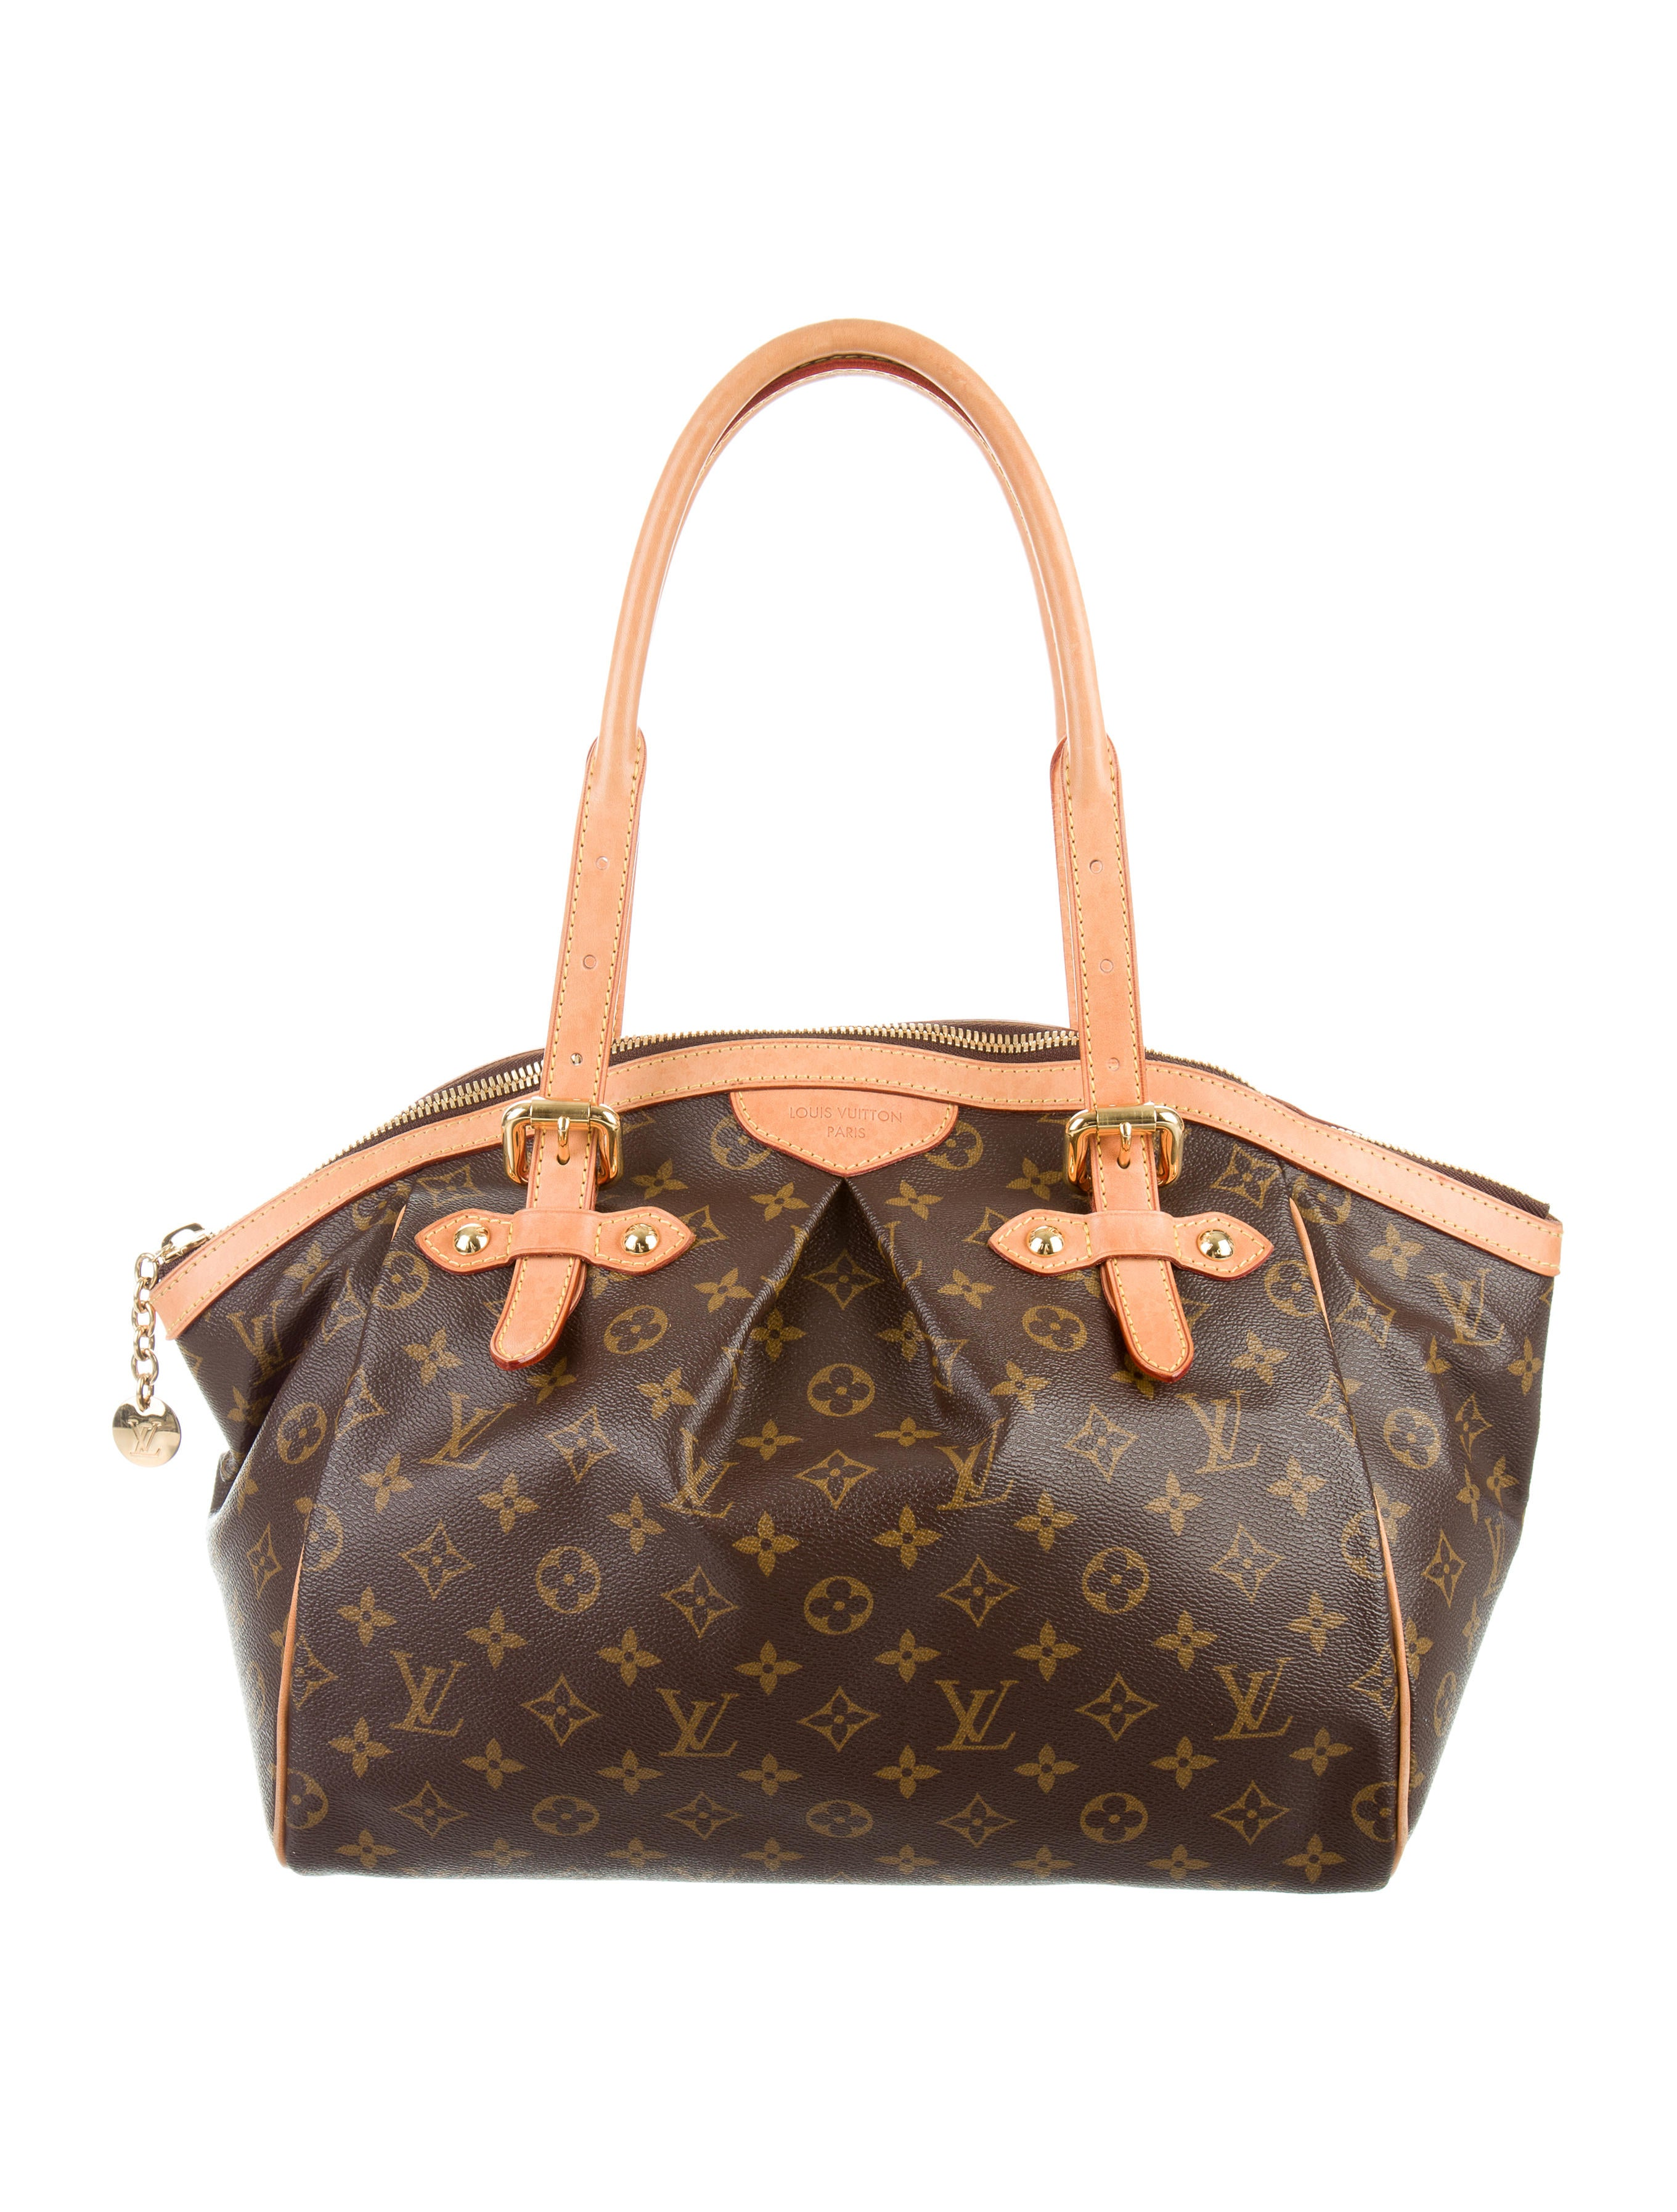 trivoli women Get the best deals on louis vuitton tivoli pm and save up to 70% off at poshmark now whatever you're shopping for, we've got it.